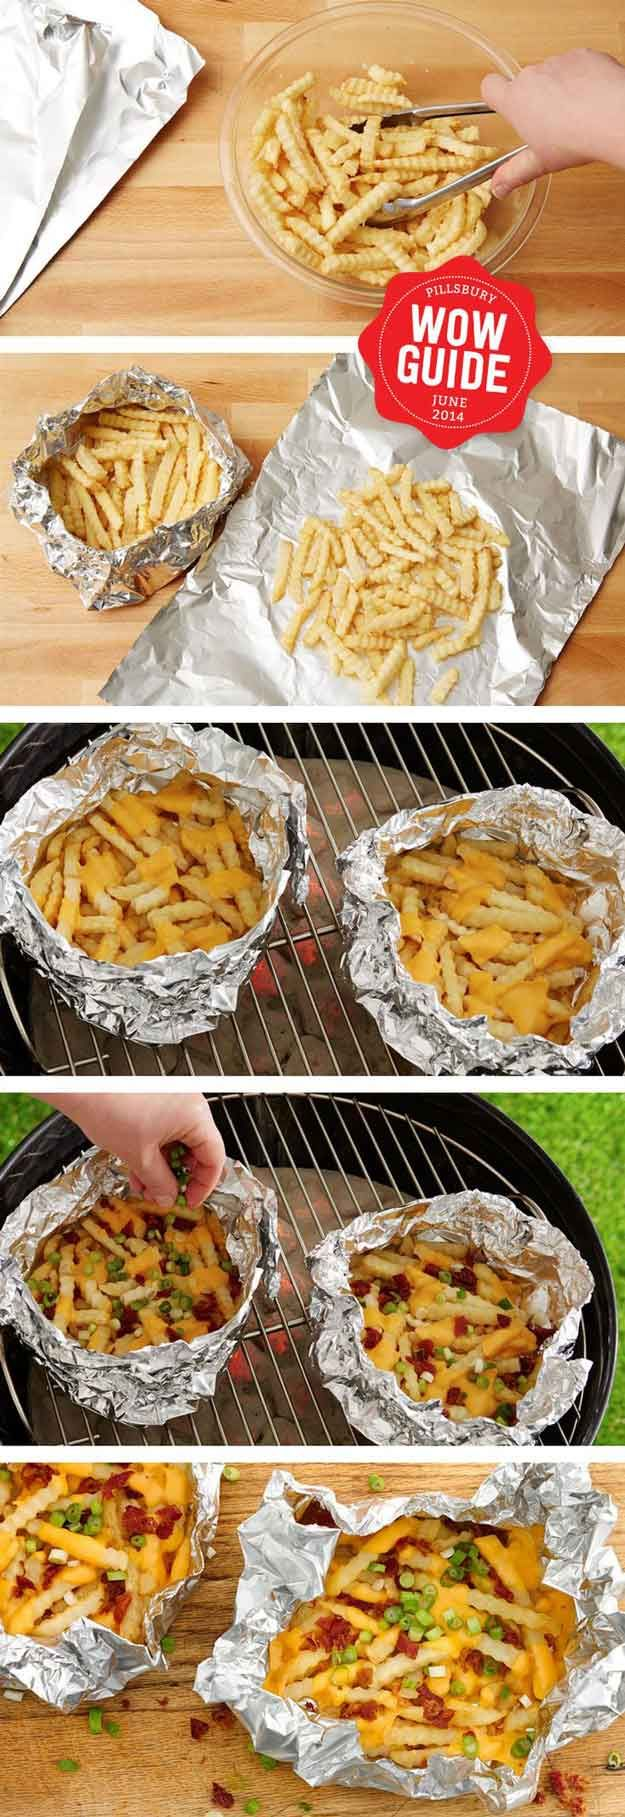 Grilled Foil-Pack Cheesy Fries   44 Saucy BBQ Recipes & Ideas for Creative Kitchens